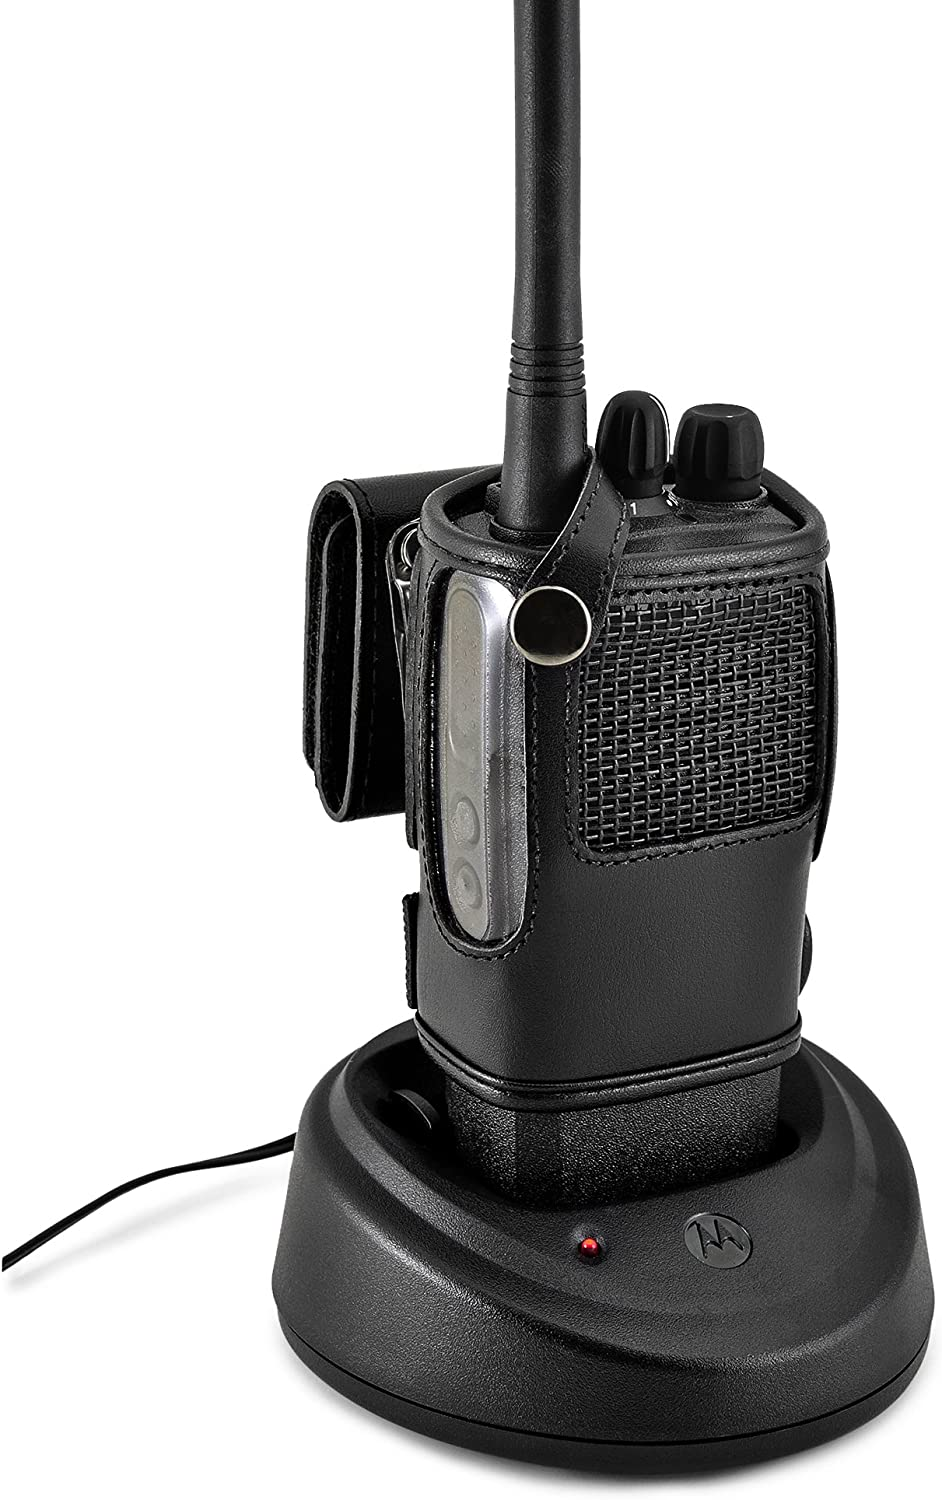 Black Leather Pouch with Heavy Duty Rotating Ratcheting 2.25 Belt Loop Made in USA Turtleback Carry Holder for Tytera TYT MD-2017 Fire and Police Security Two Way Radio Belt Clip Holster Case